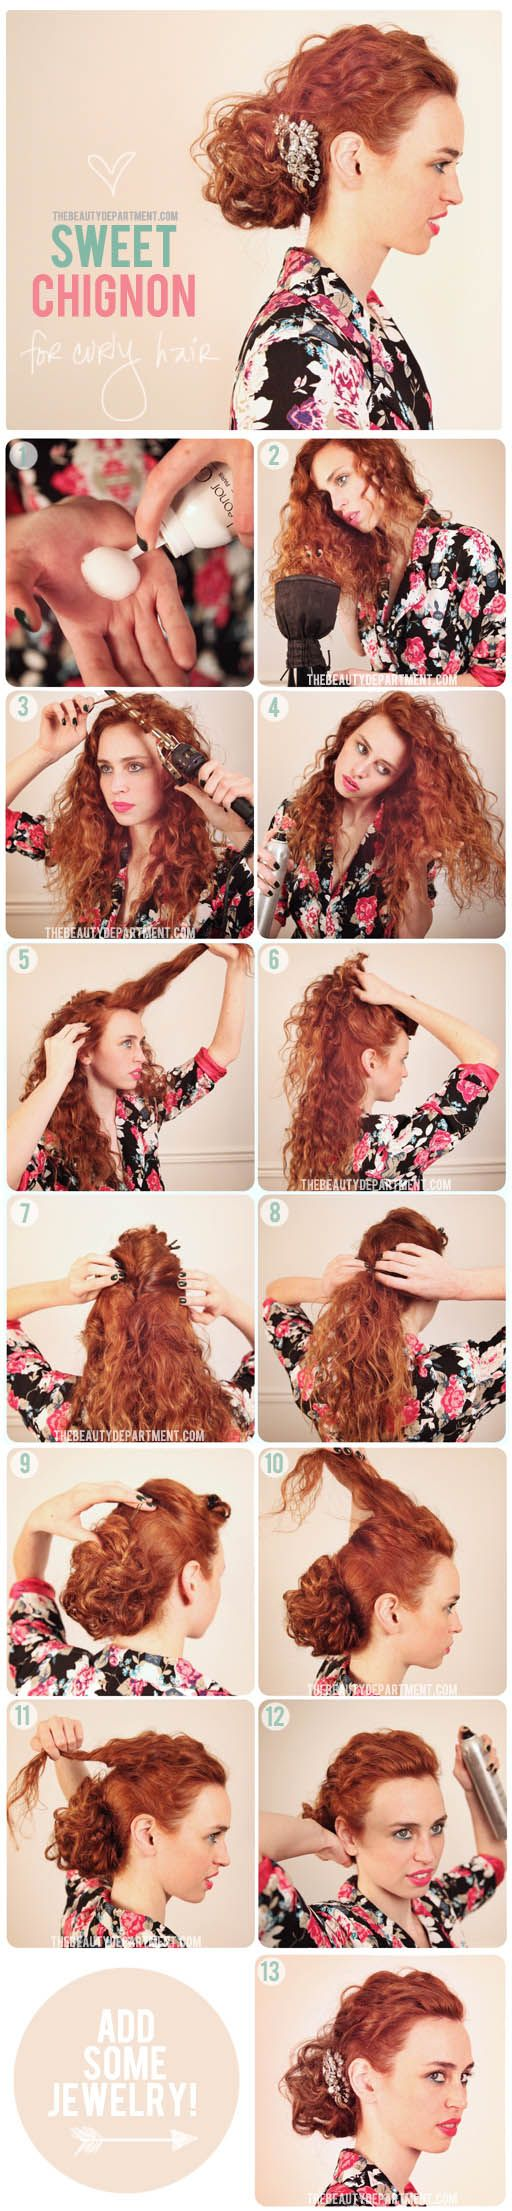 best images about I whip my hair back u forth on Pinterest